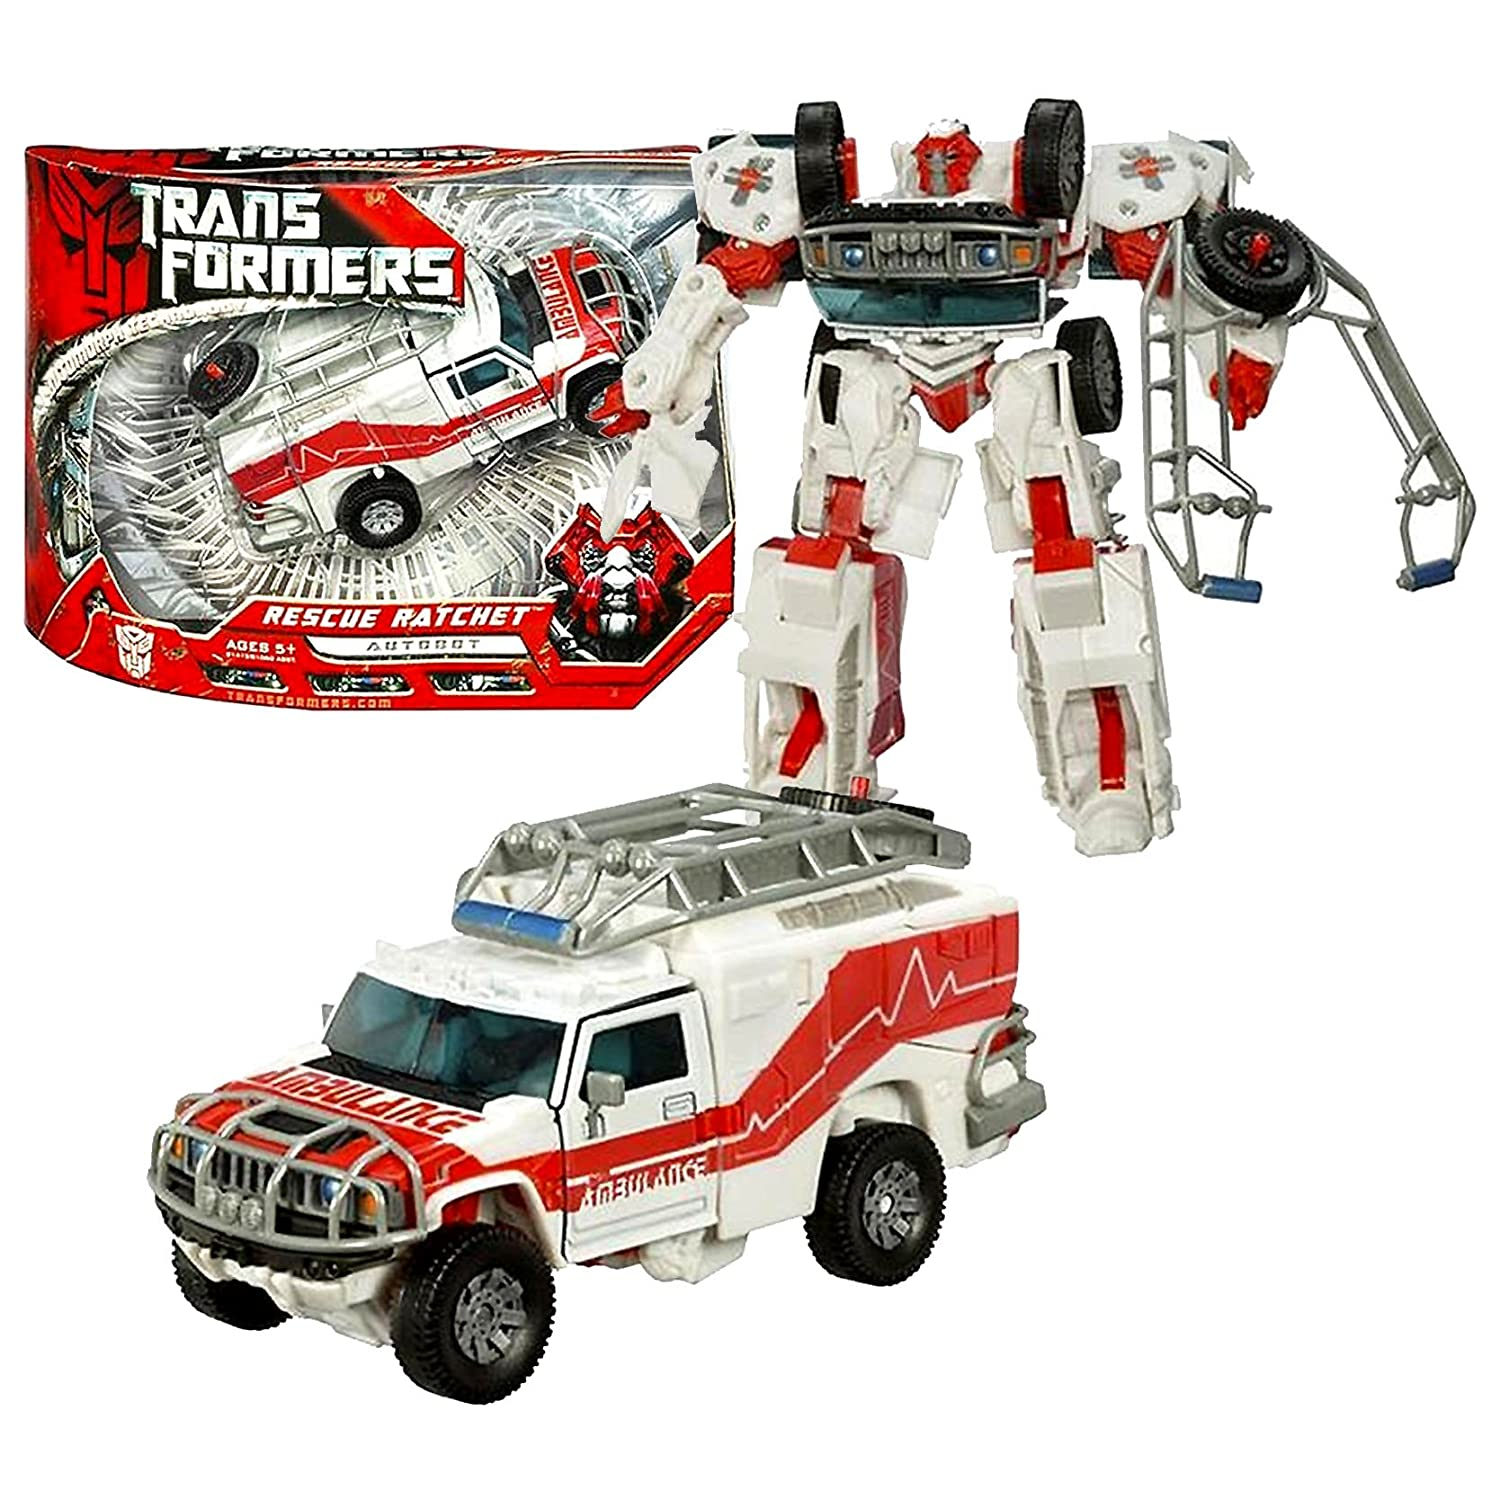 Hasbro Year 2007 Transformers Movie Series 1 Voyager Class 7 Inch Tall Robot Action Figure - Autobot RESCUE RATCHET with Automorph Forearm Cannon and Hidden Axe (Vehicle Mode: Hummer H2 Ambulance) transformers трансформер autobot twinferno